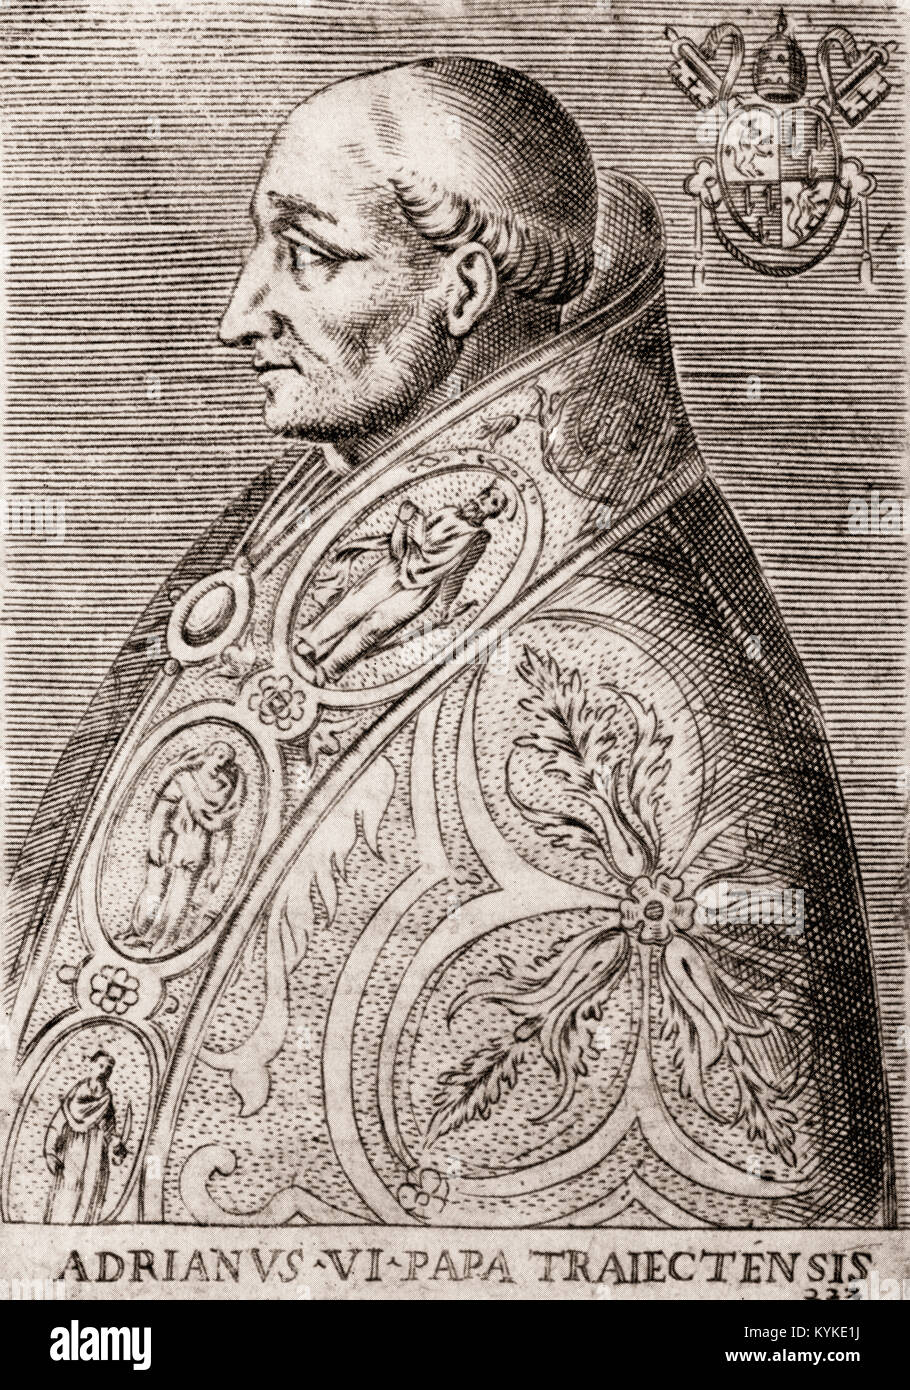 Pope Adrian VI, born Adriaan Florensz, 1459-1523, pope from 1522 to